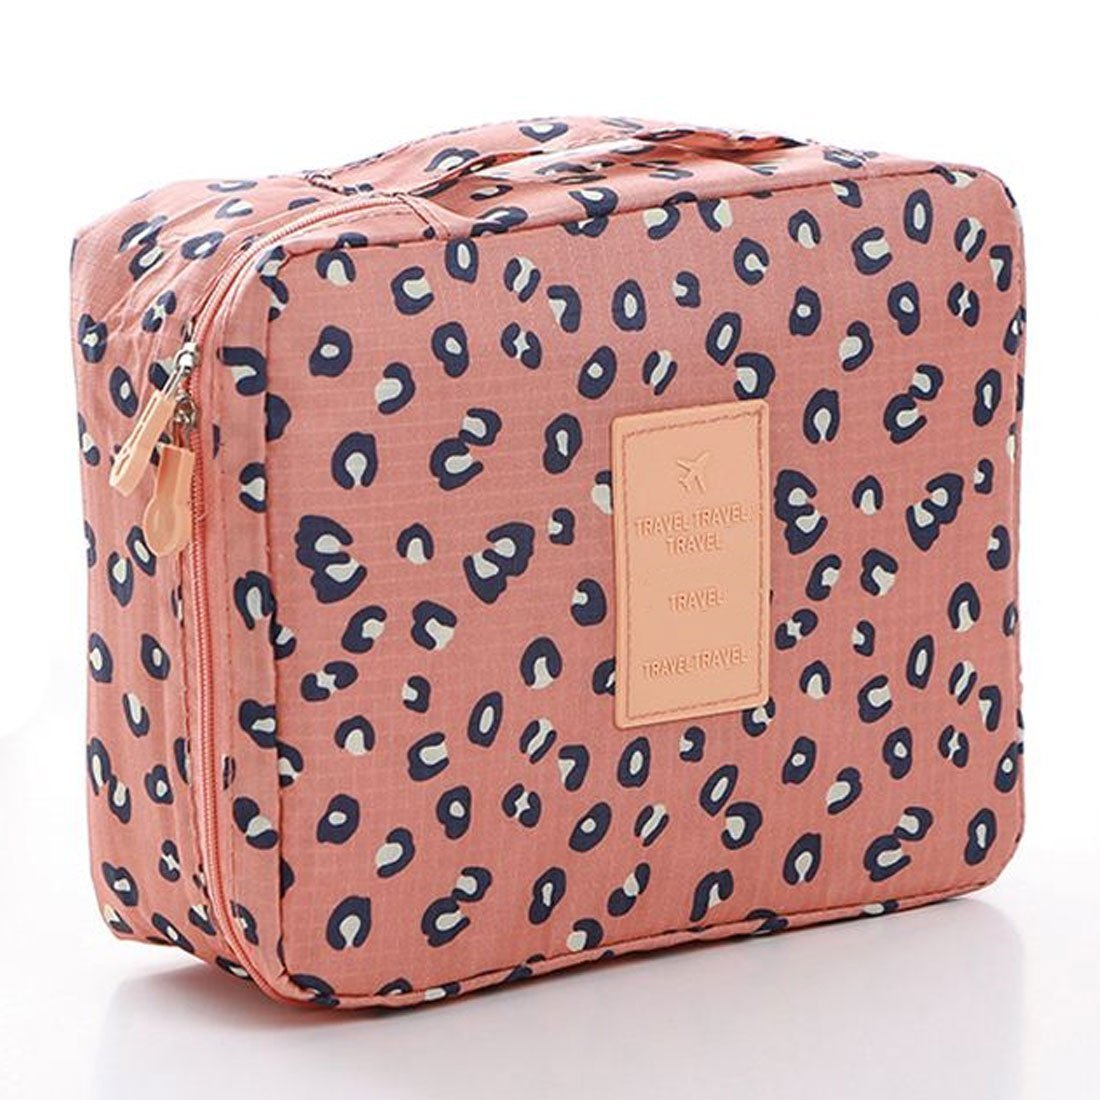 CalorMixs Travel Bag Printed Multifunction Portable Toiletry Bag Cosmetic Makeup Pouch Case Organizer for Travel, Leopard print YY031